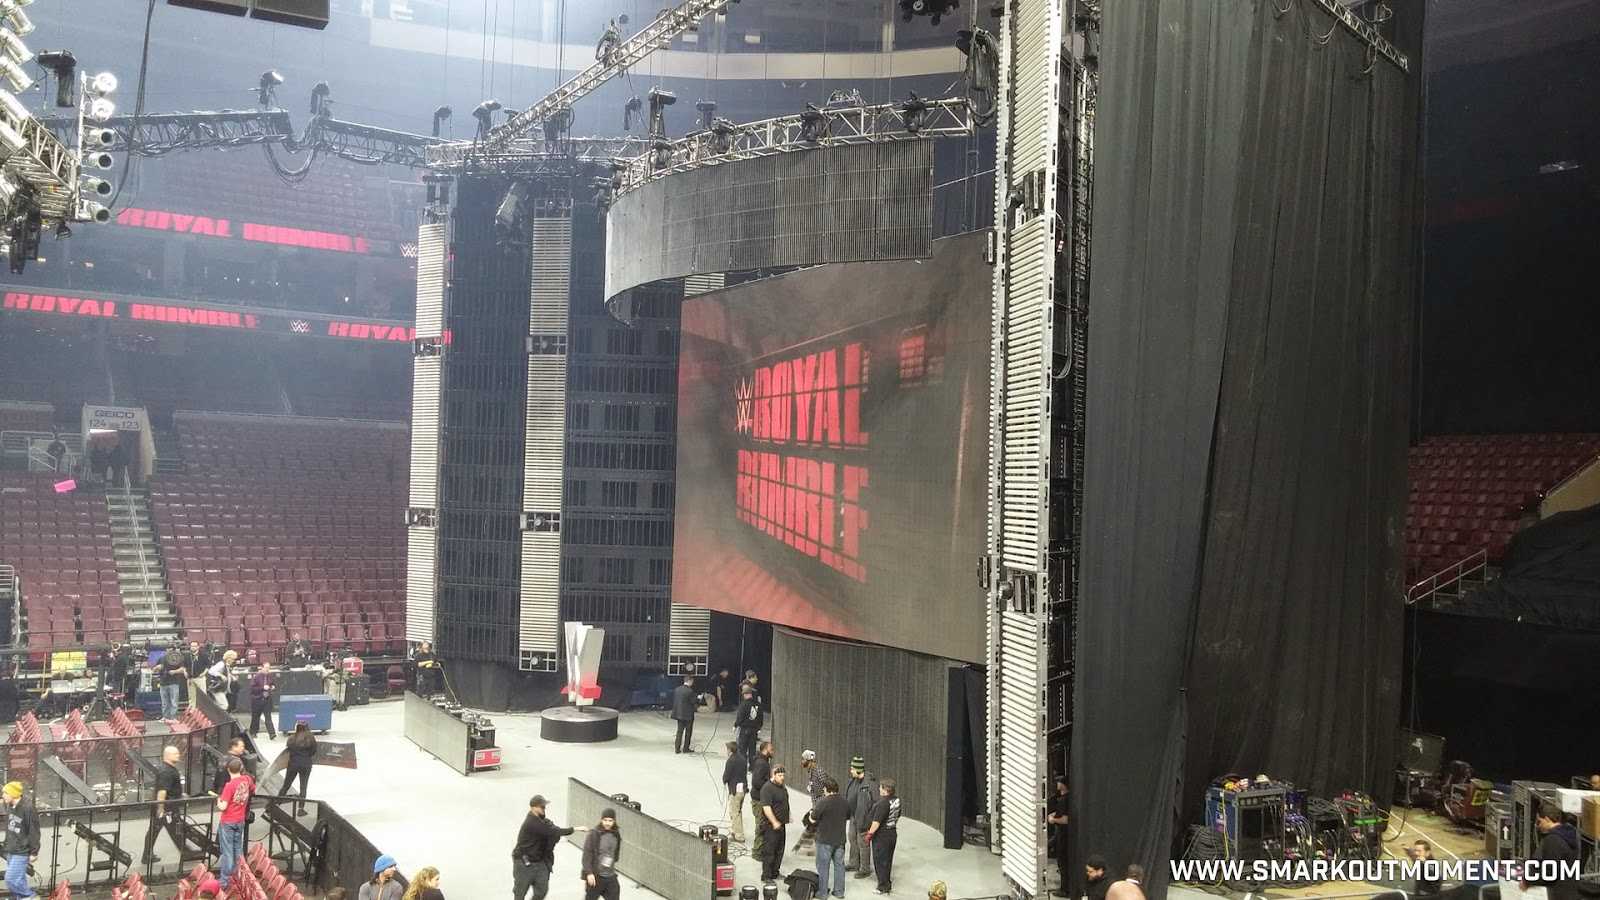 WWE Royal Rumble 2015 set view